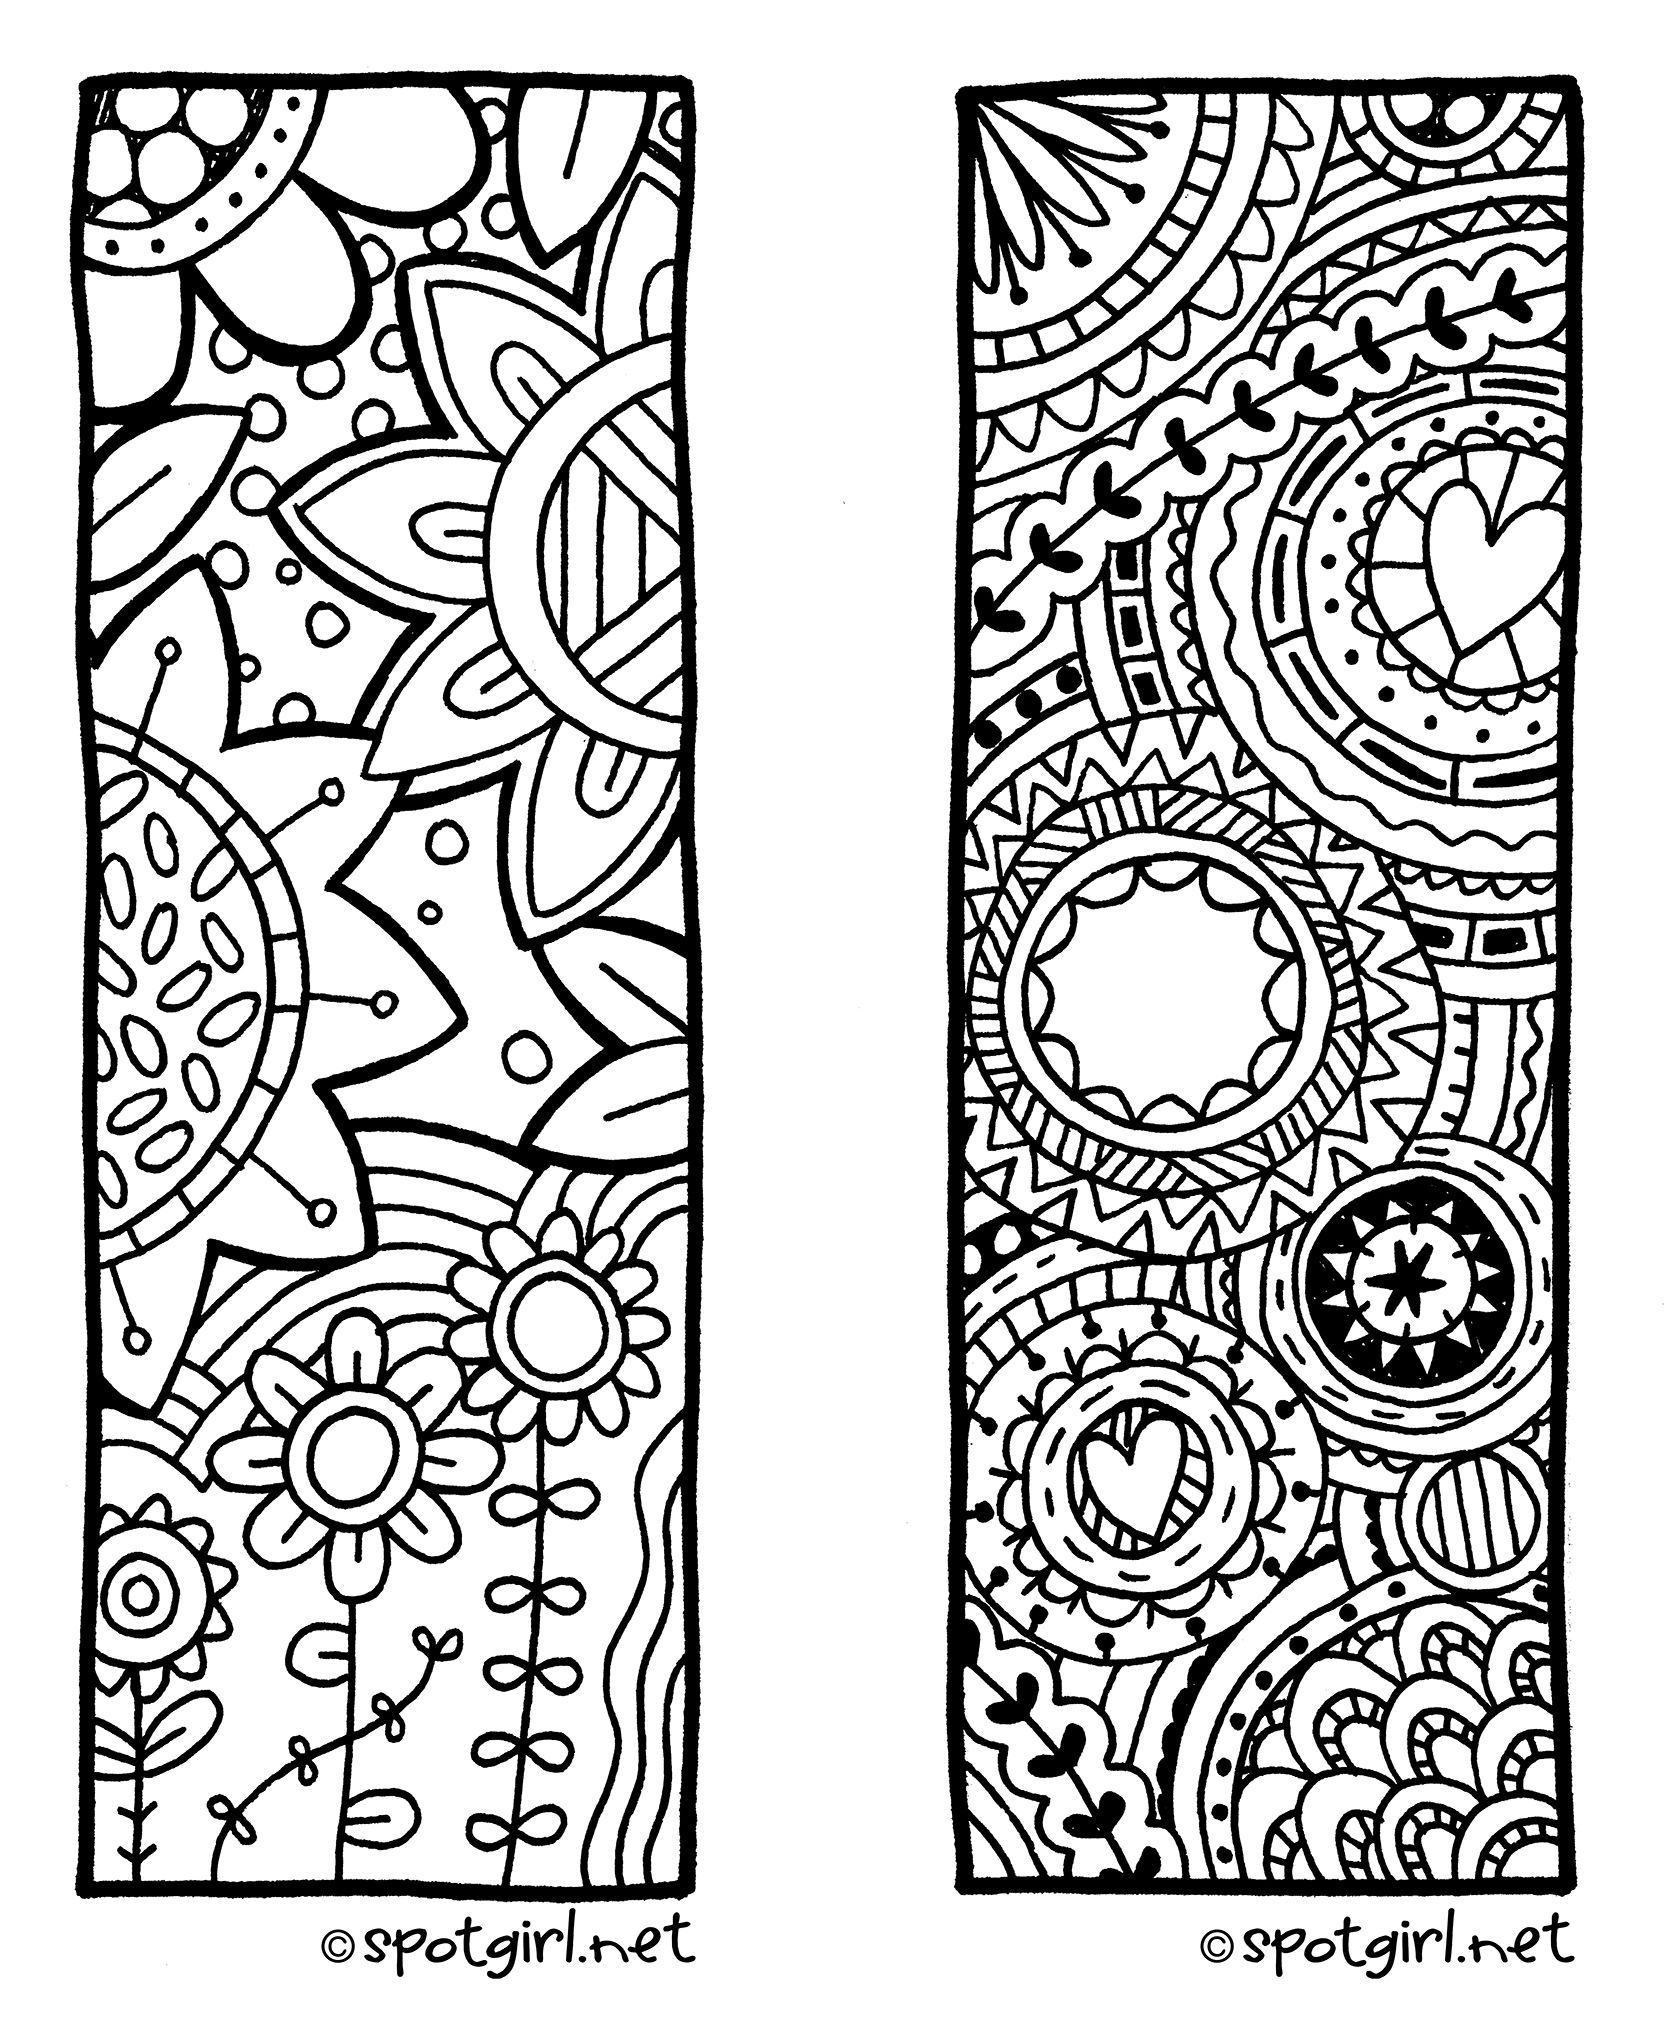 valentine bookmarks to color : Zentangle Bookmark Printable From Spotgirl Hotcakes Blogspot Com